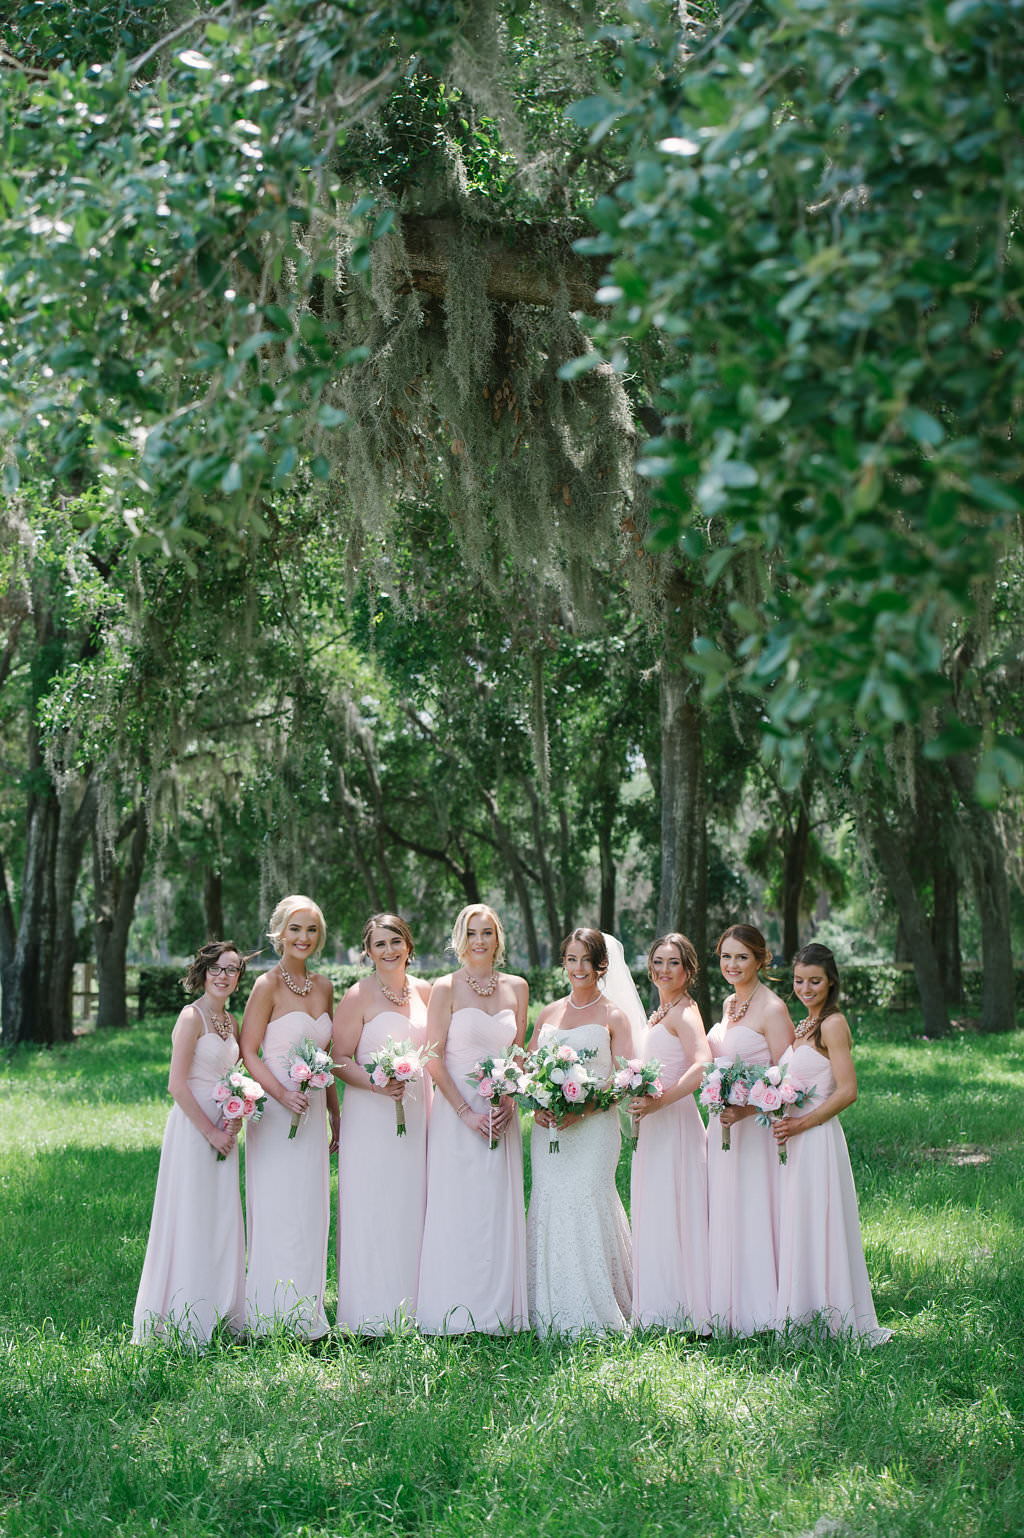 Florida Bride and Bridesmaids Outdoor Wedding Portrait, Bridesmaids in Blush Pink Long Matching Dresses, Bride in Lace Strapless Sweetheart Fitted Wedding Dress | Inverness Rustic Wedding Venue Lakeside Ranch